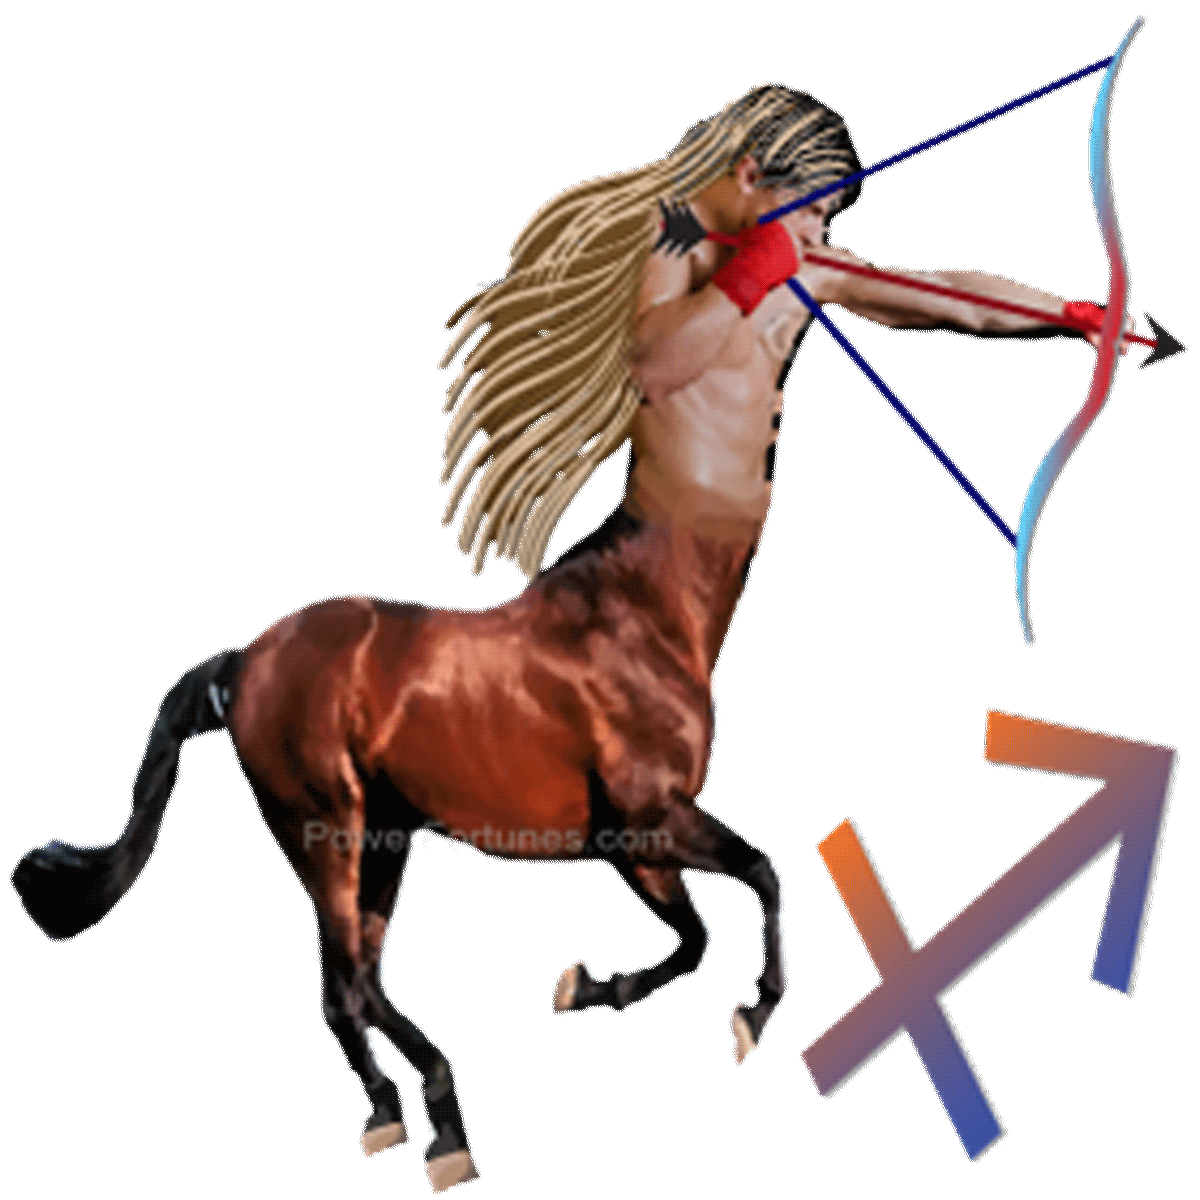 Monthly horoscopes for Sagittarius, from 1st May to 31st May